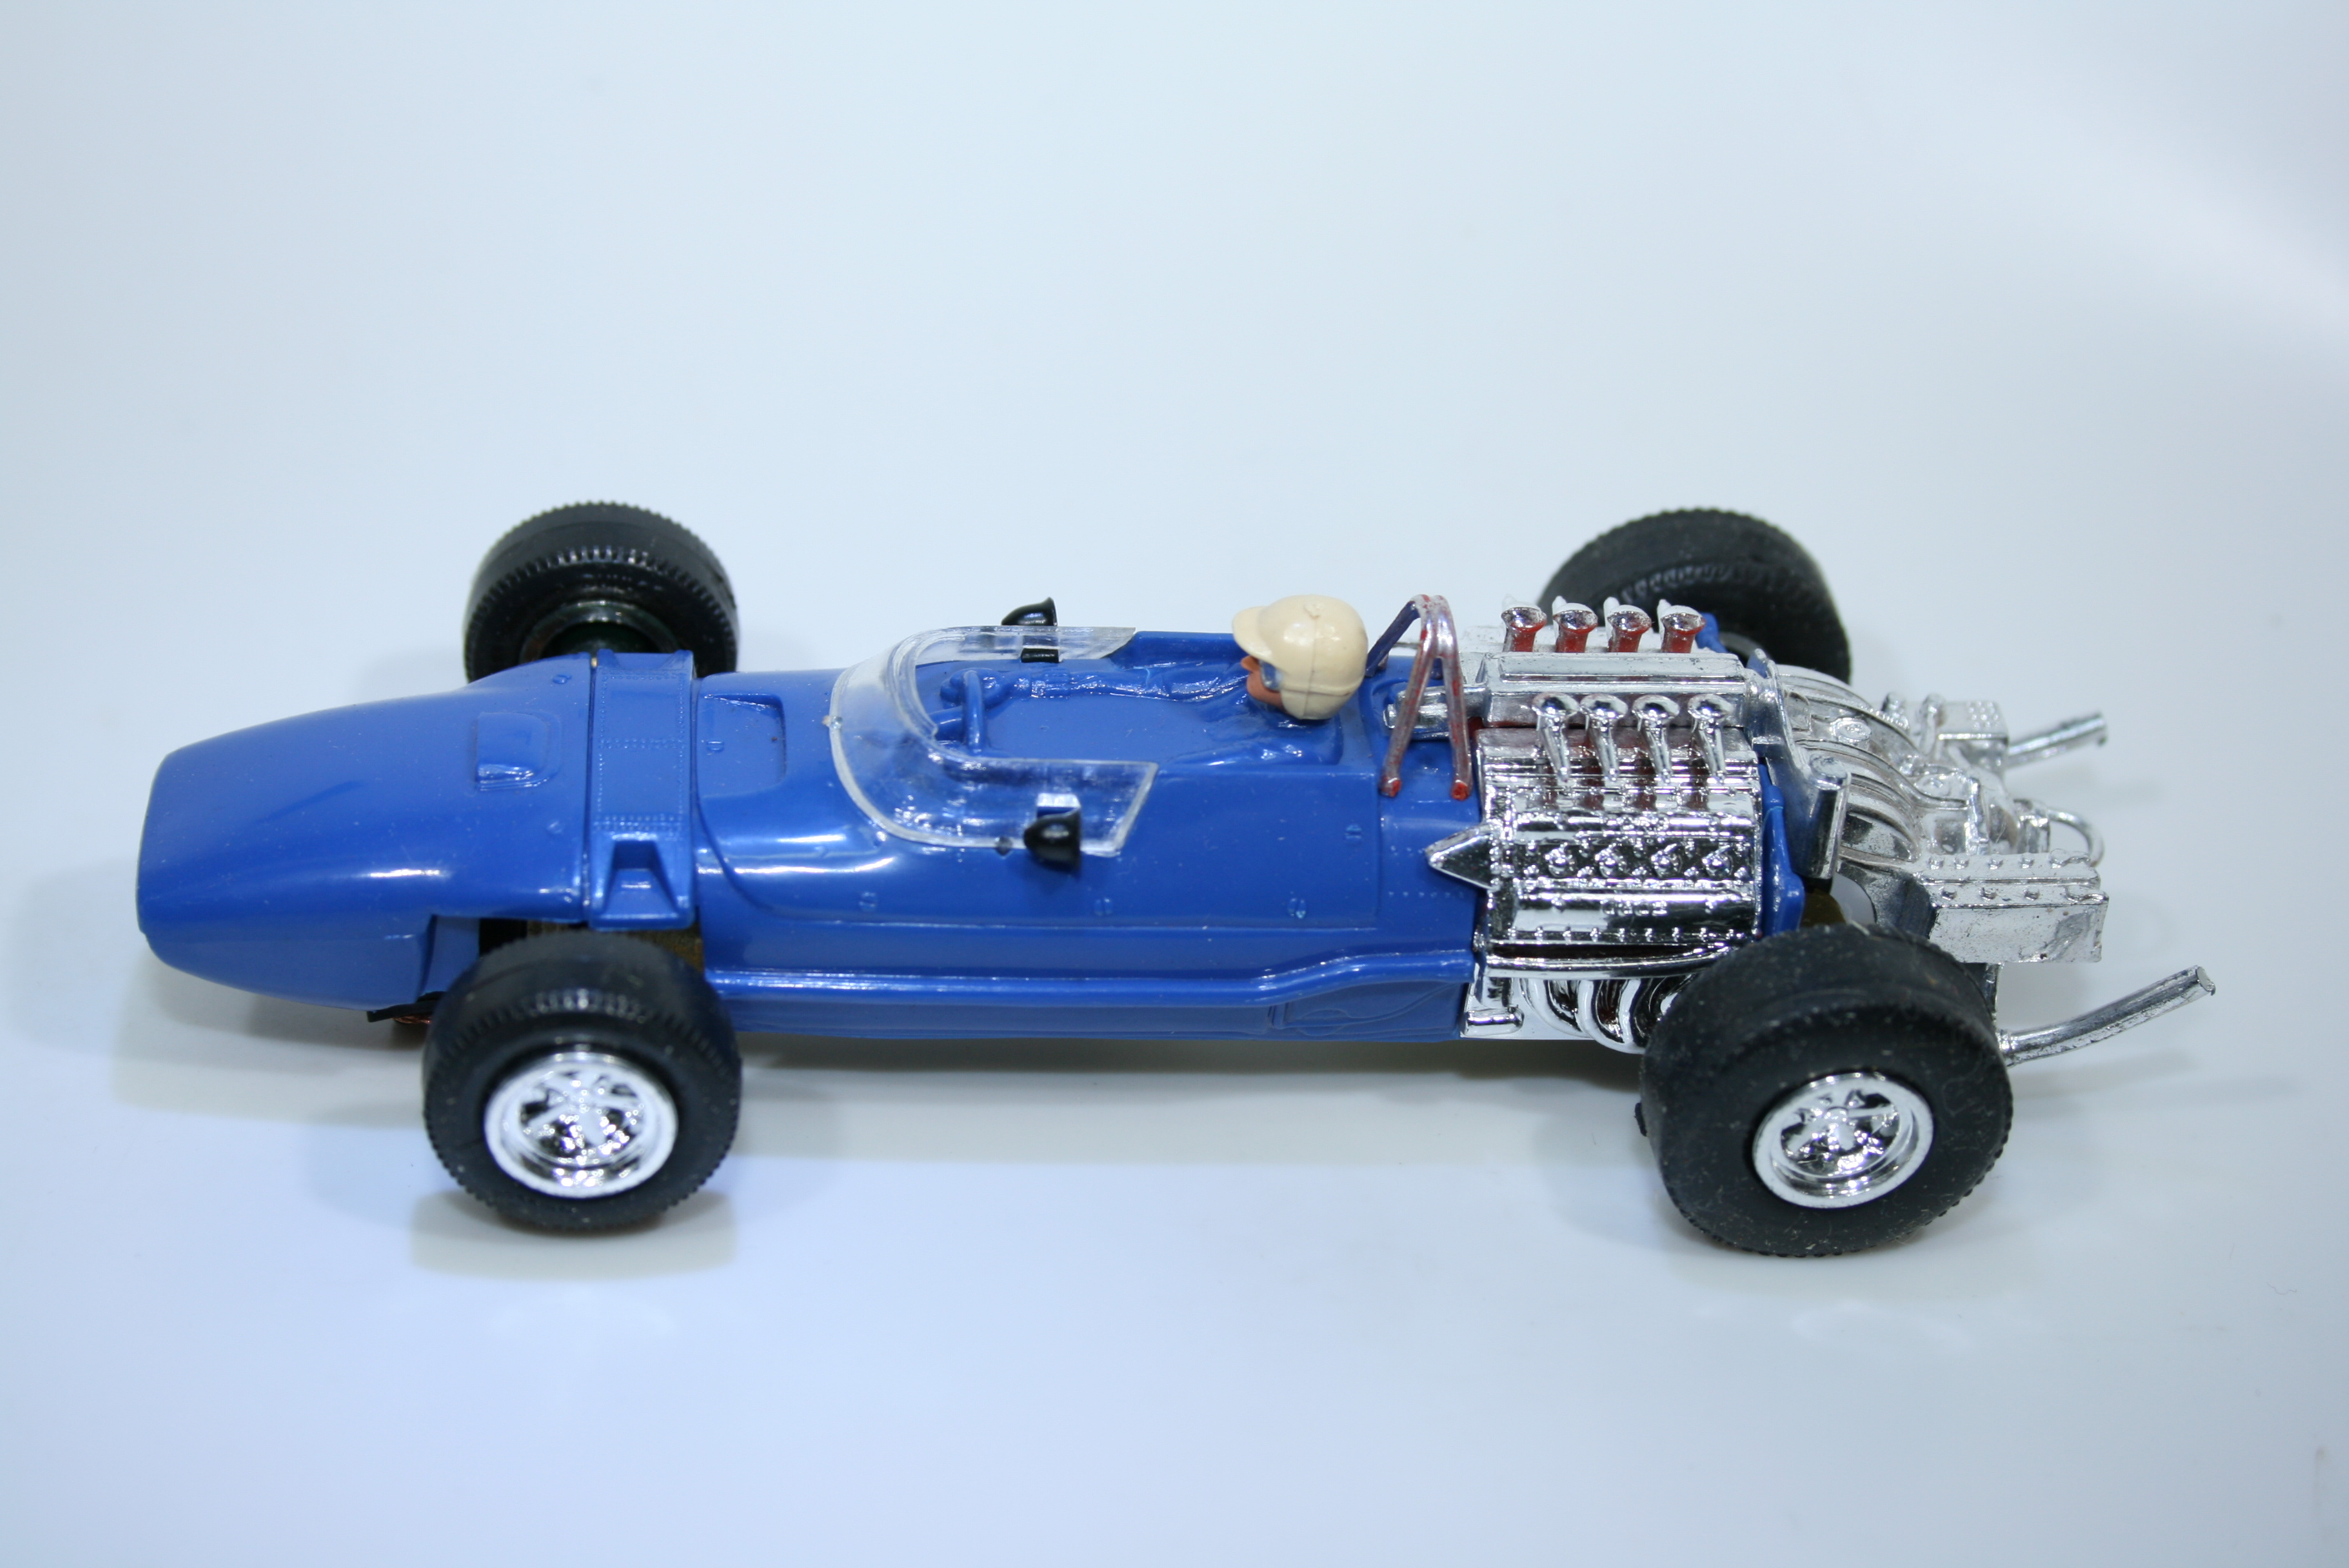 1148  Matra MS10 1968 J Stewart MRRC 5197 1968 Boxed